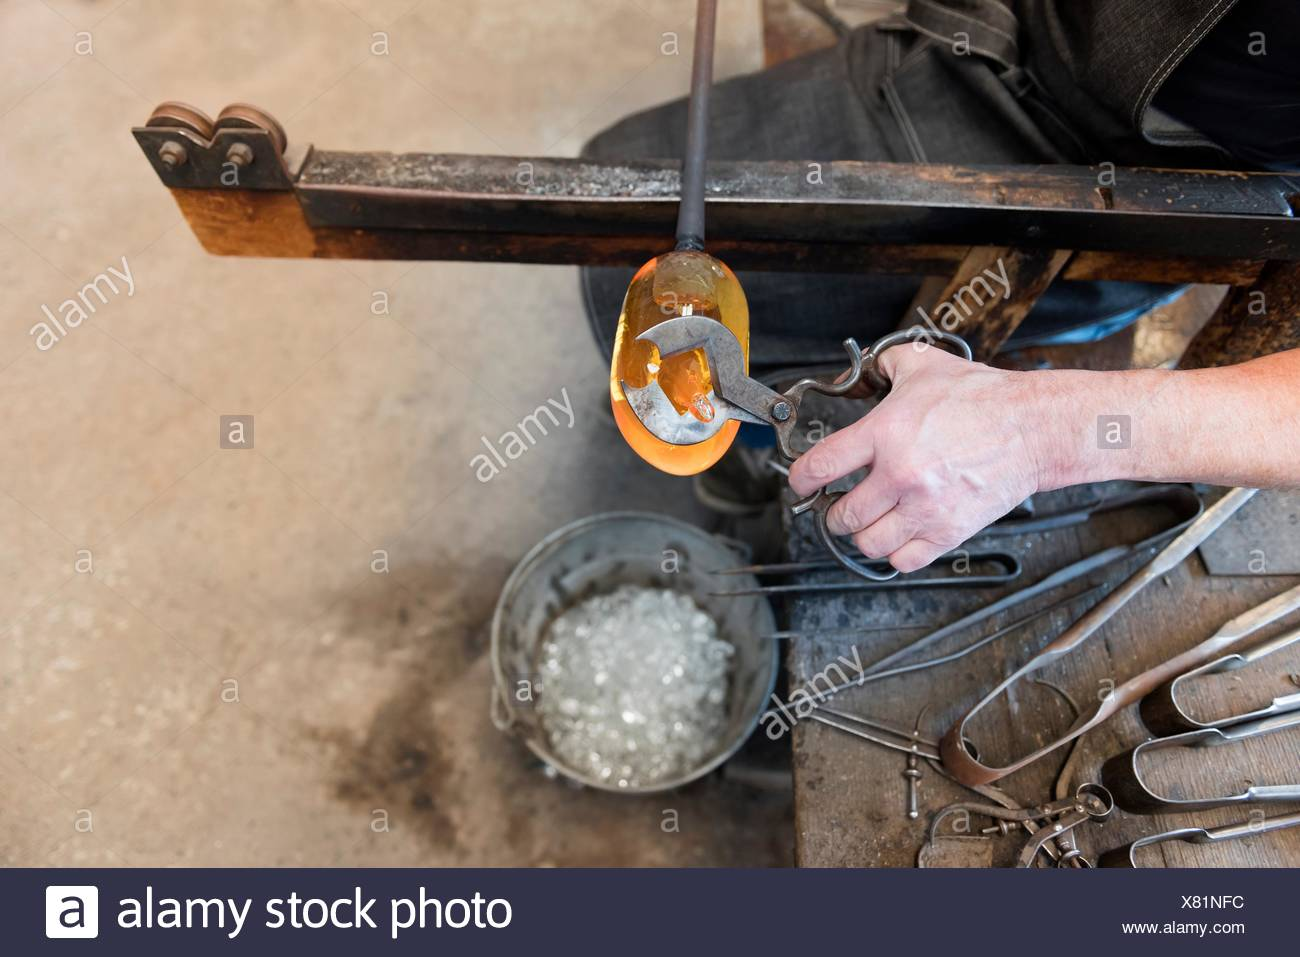 Glassblower using tool to trim molten glass in workshop, close up - Stock Image